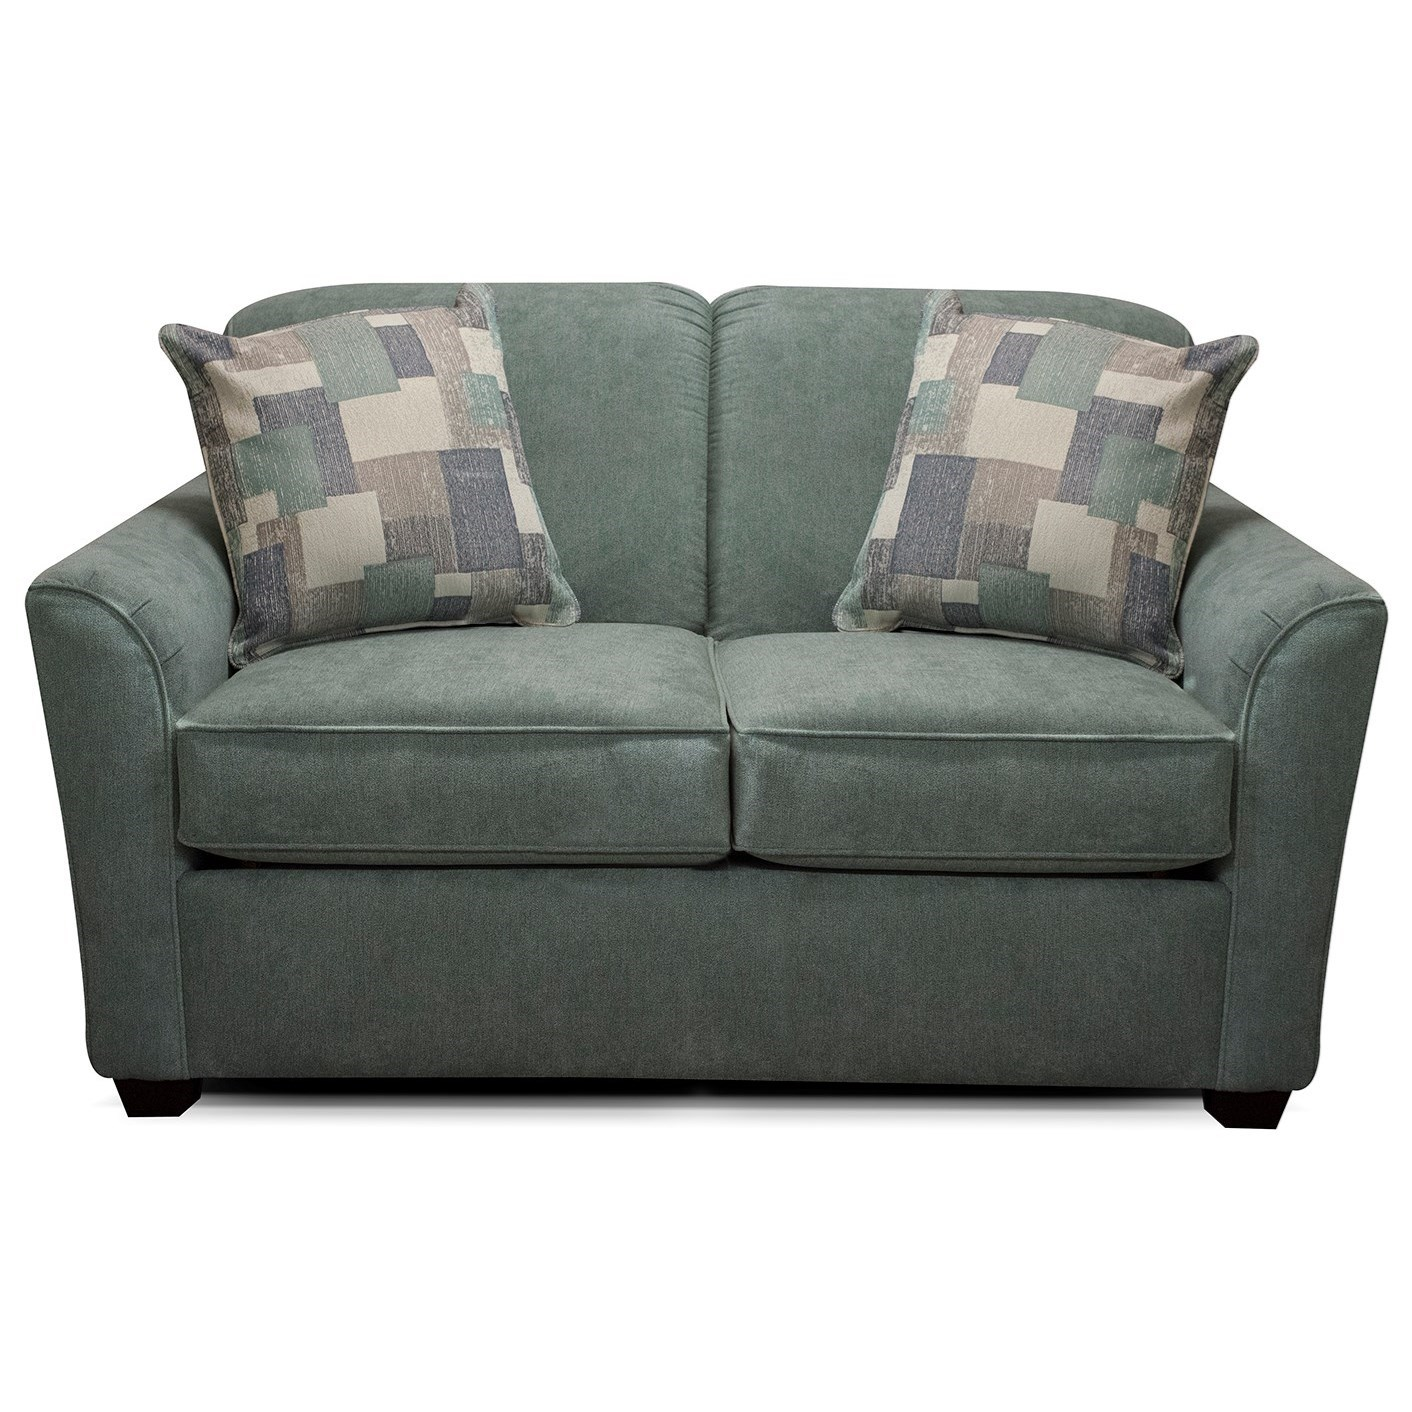 England Smyrna 306 Loveseat with Casual Contemporary Style ...